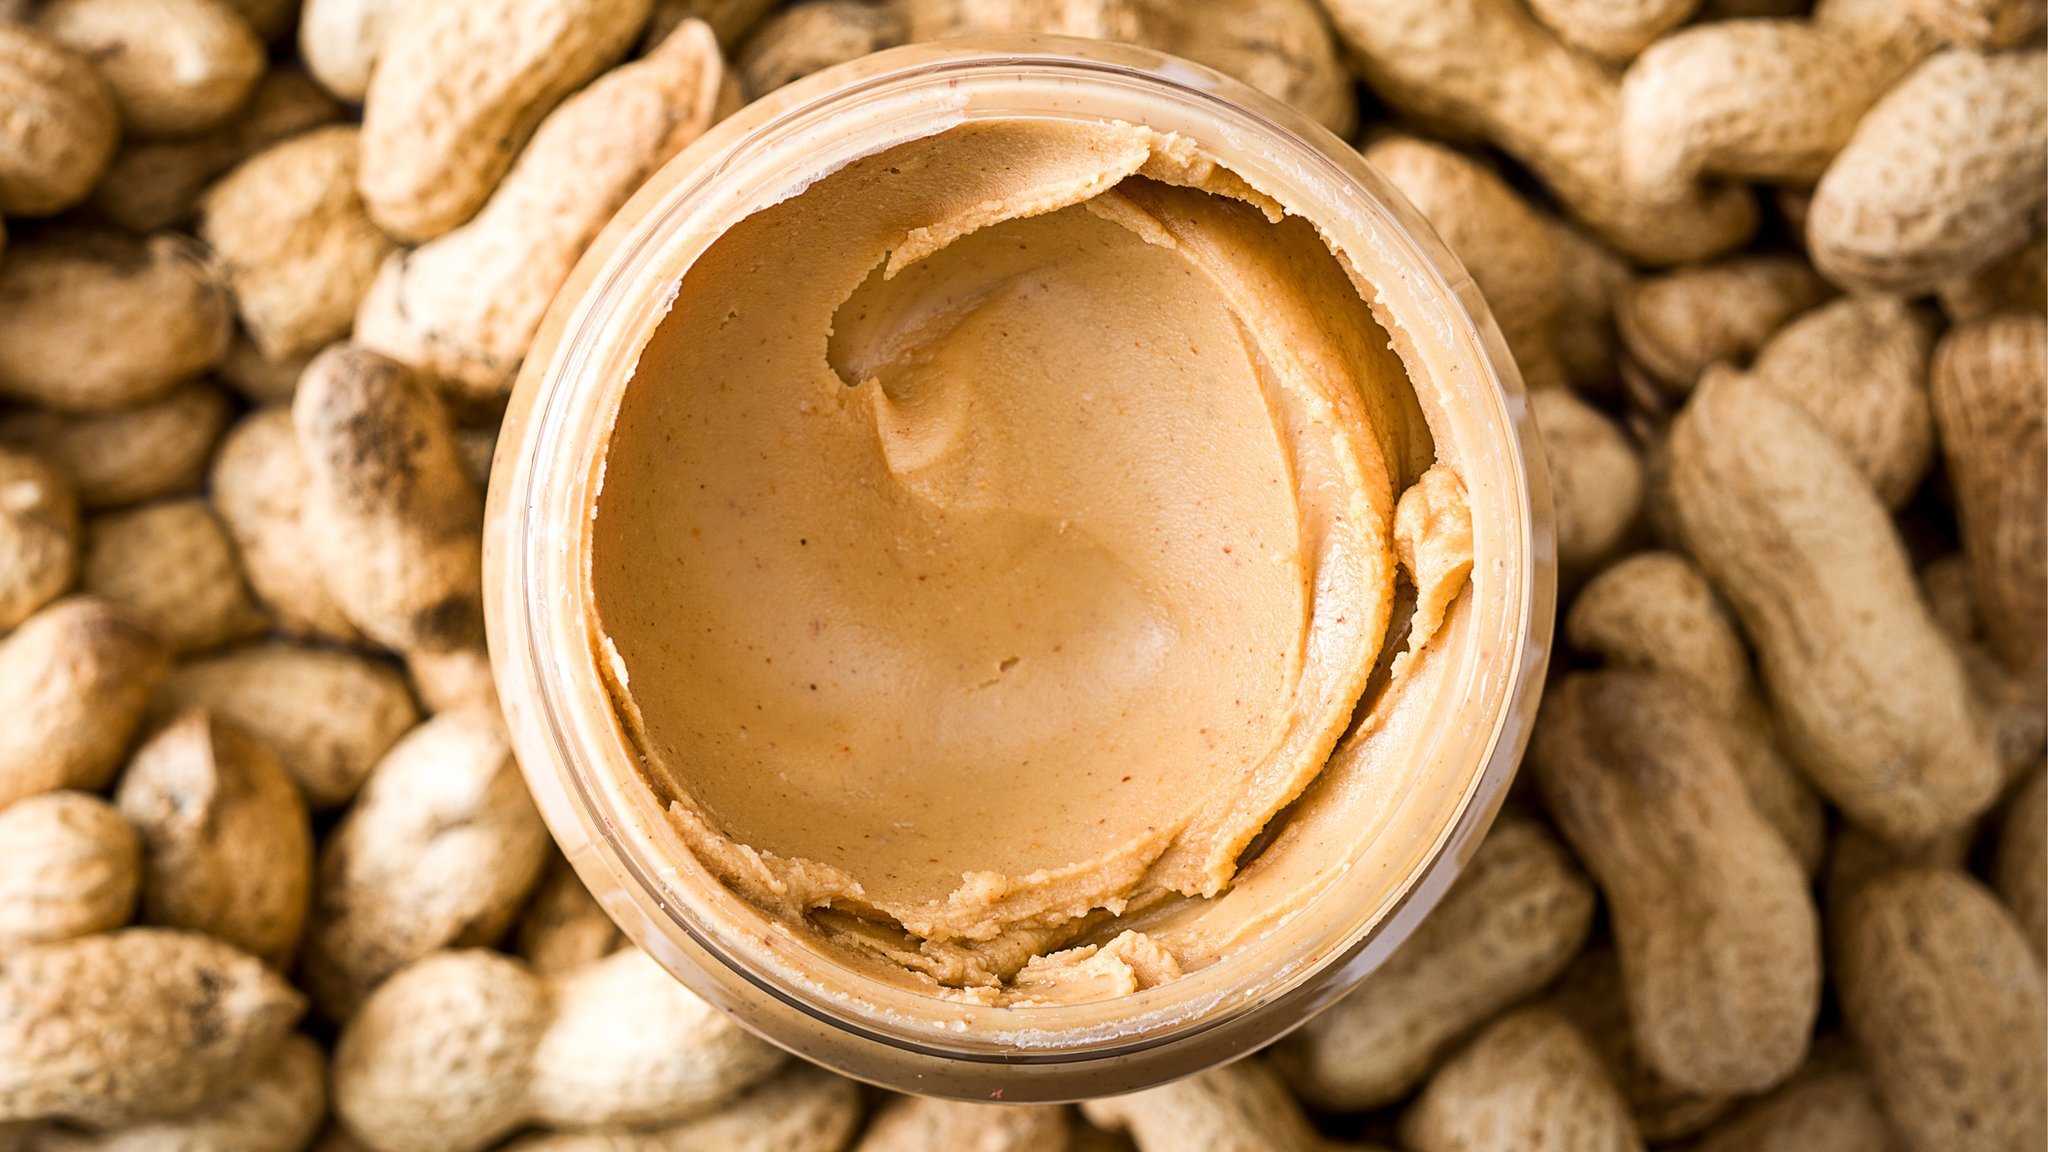 Peanut allergy treatment 'lasts up to four years'